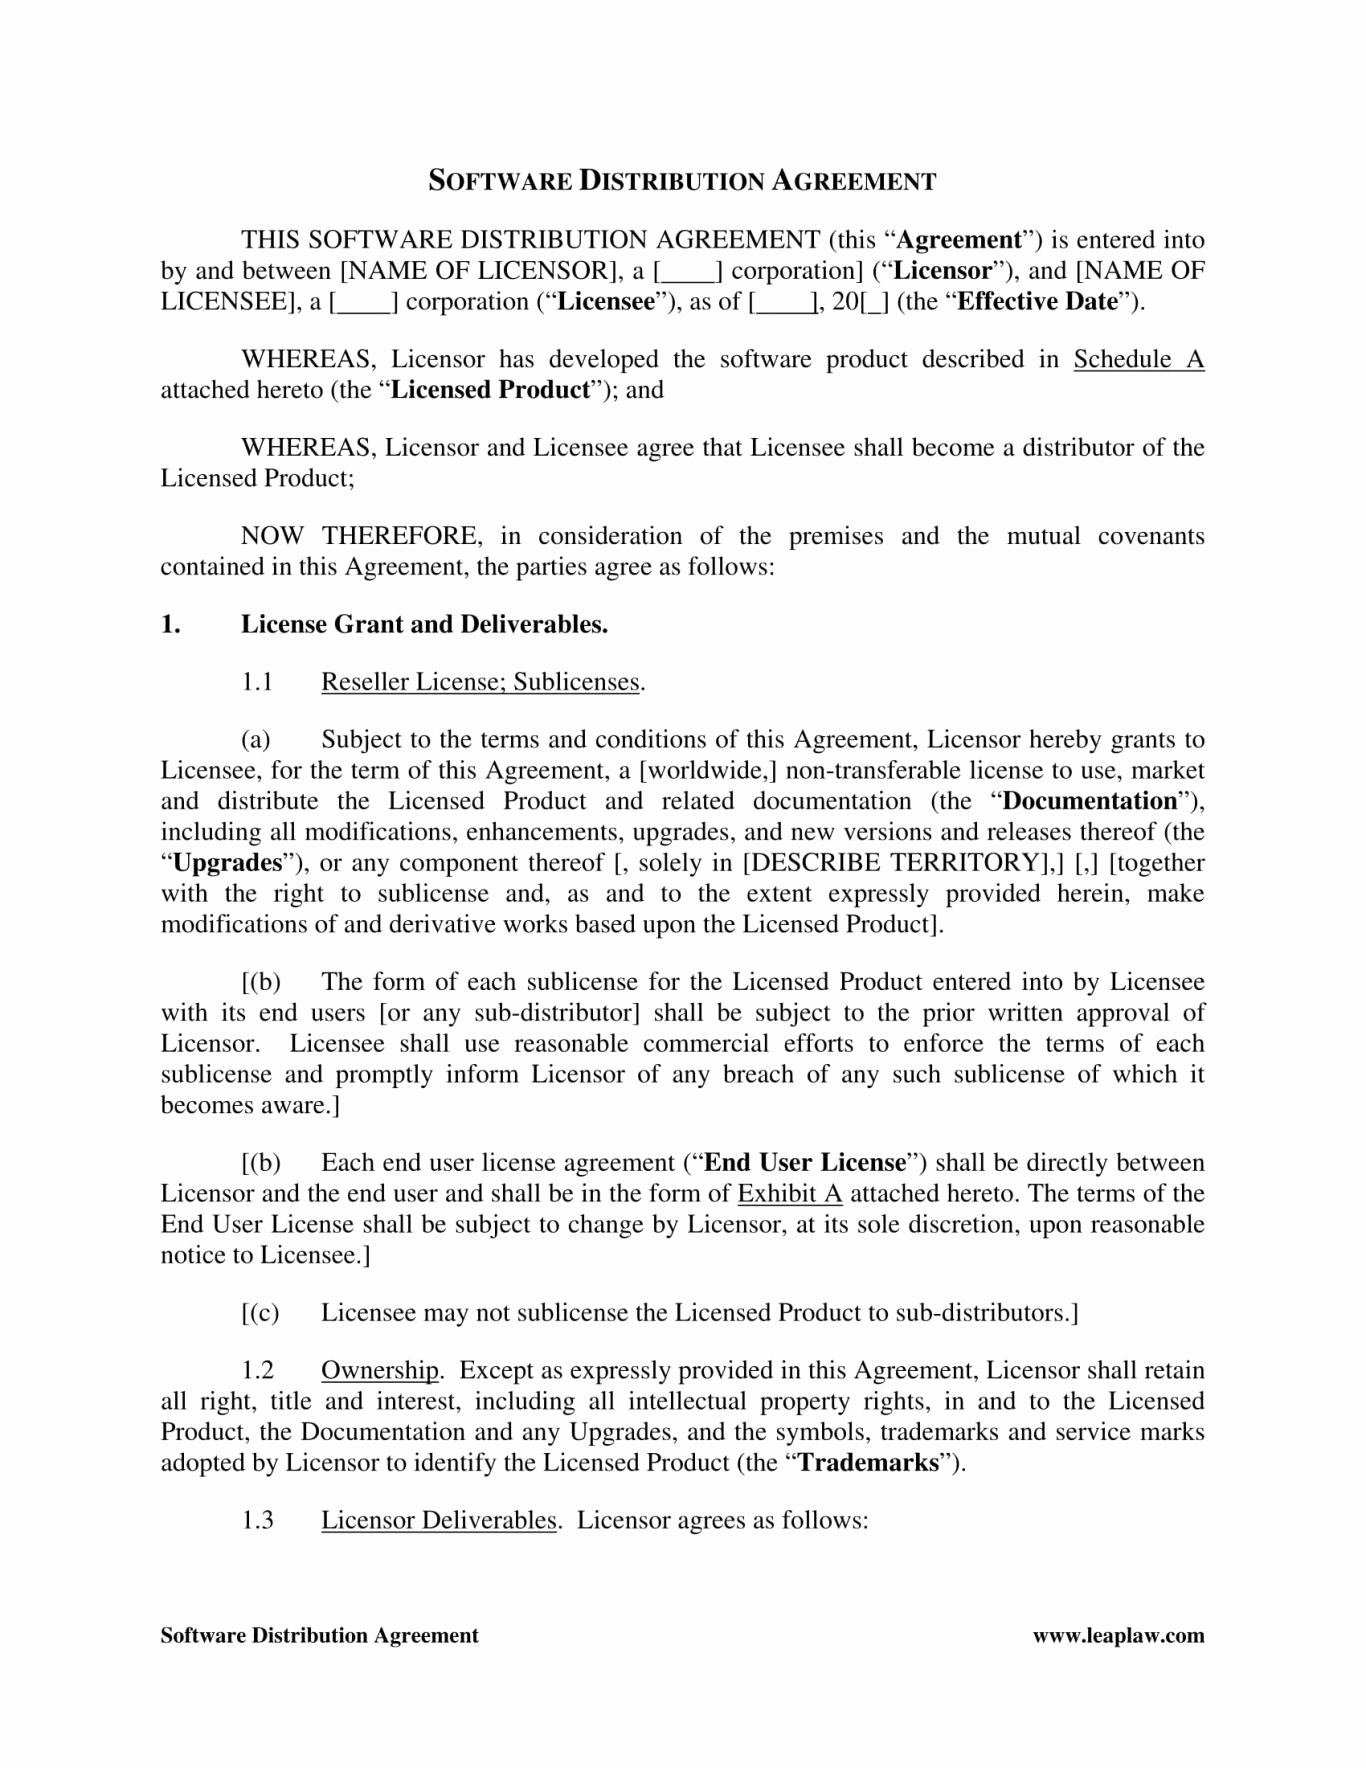 Termination Letter Template Free - Reseller Agreement Template Samples